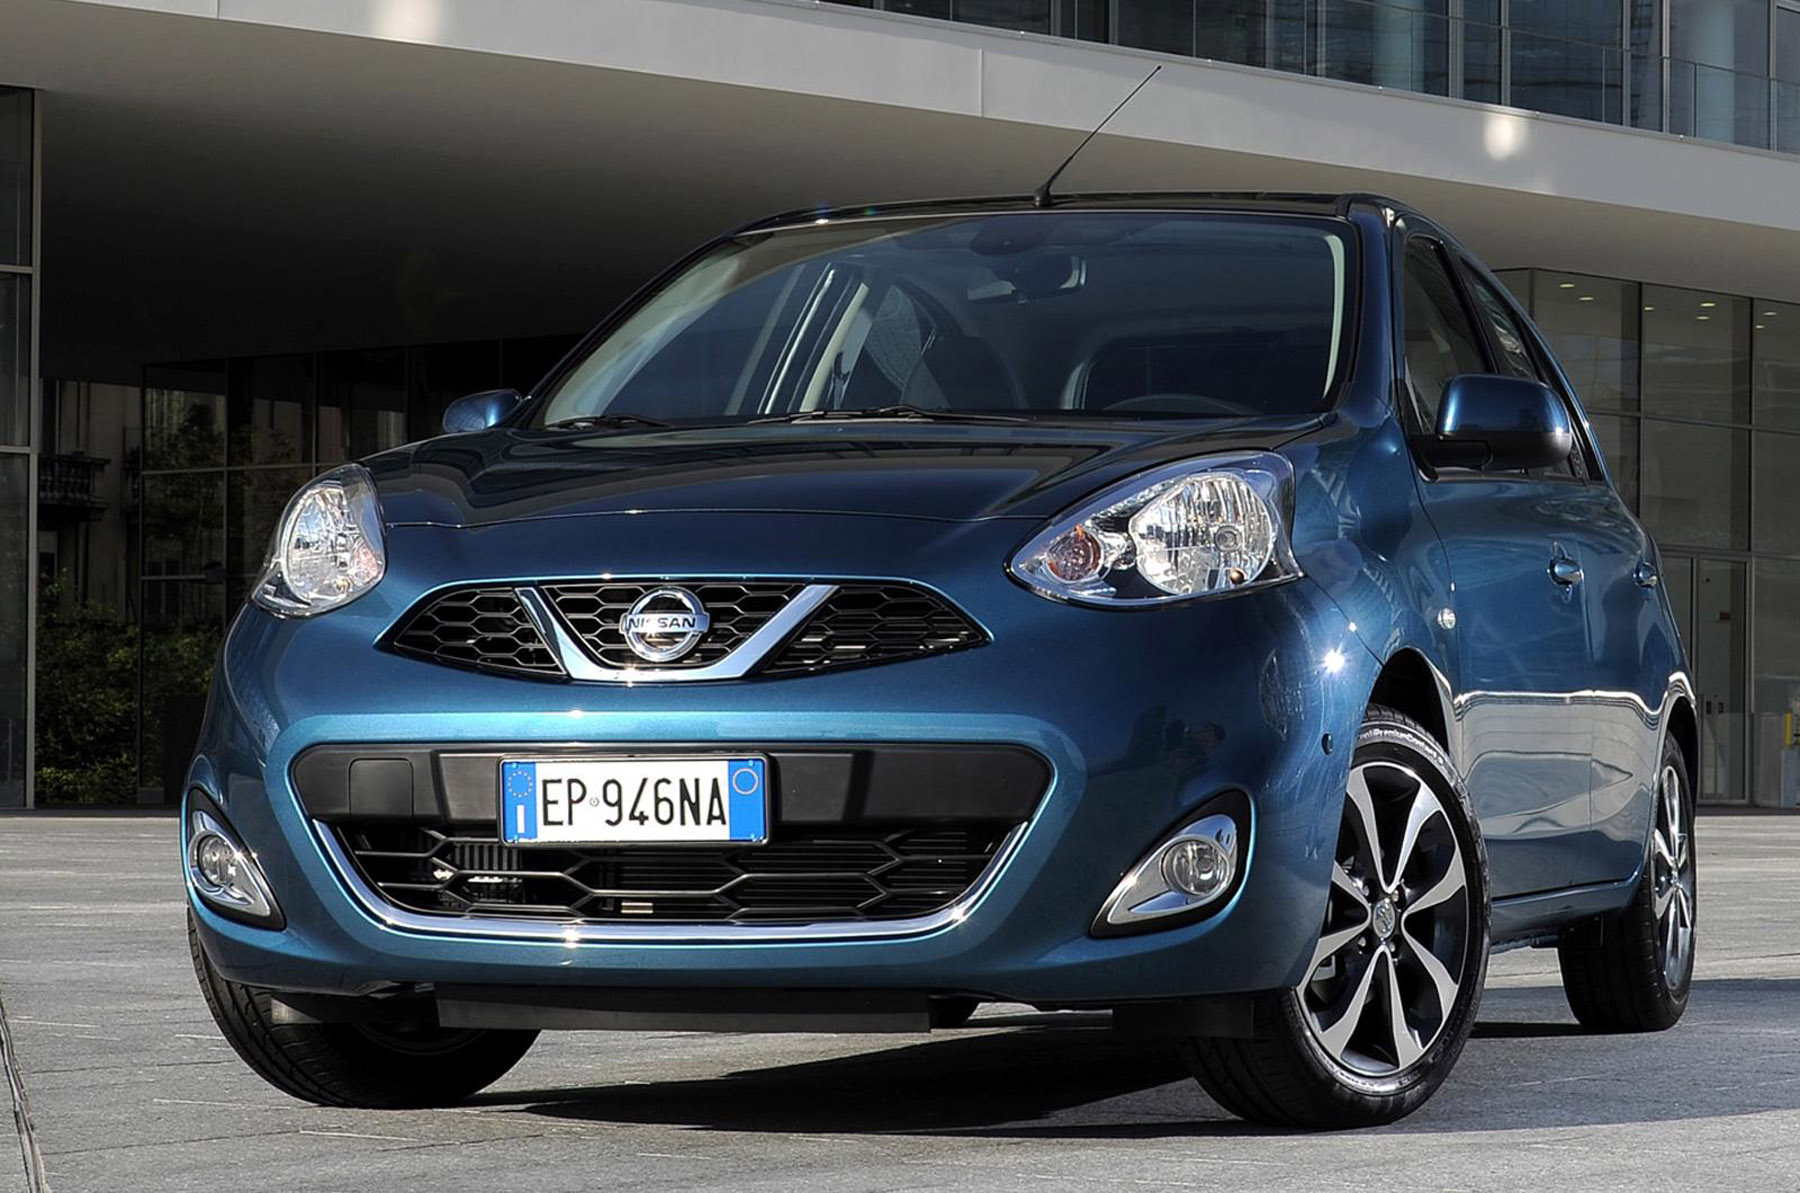 2013 nissan micra facelift picture 86020. Black Bedroom Furniture Sets. Home Design Ideas